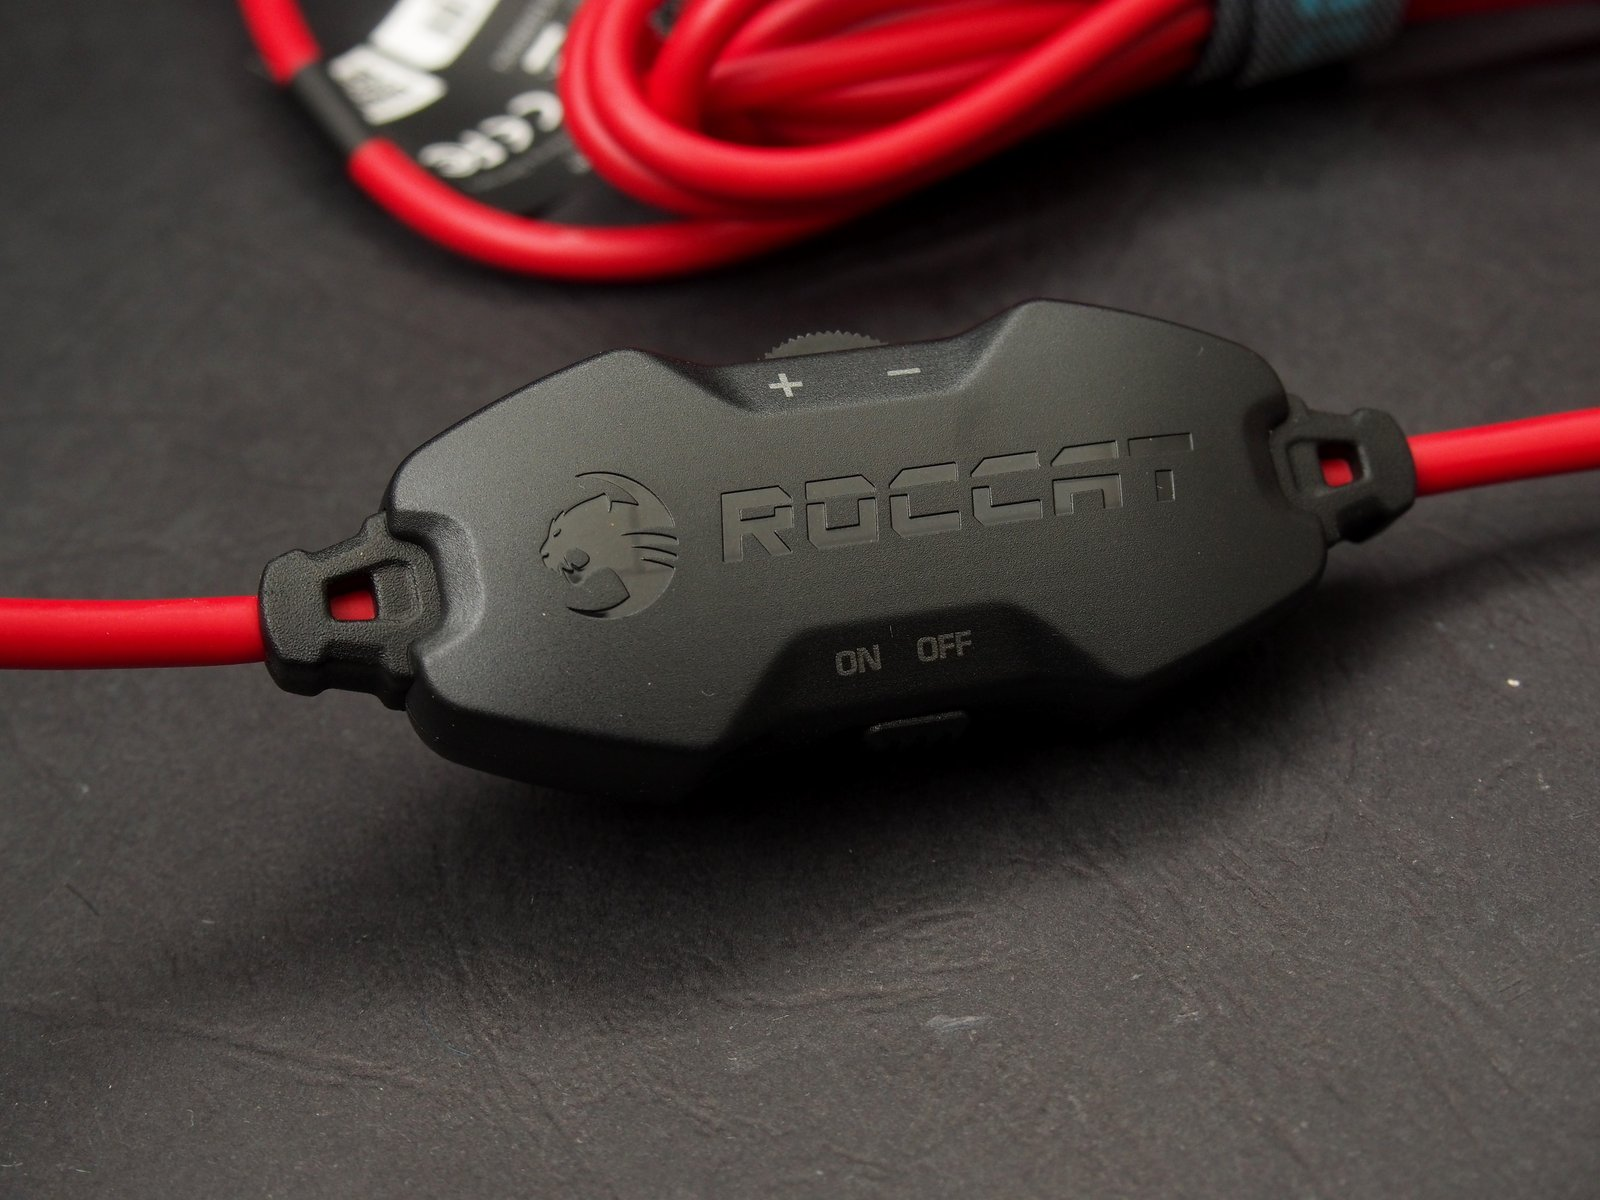 [XF] 海軍風格塗裝新裝上市 ROCCAT Kave XTD Stereo Military